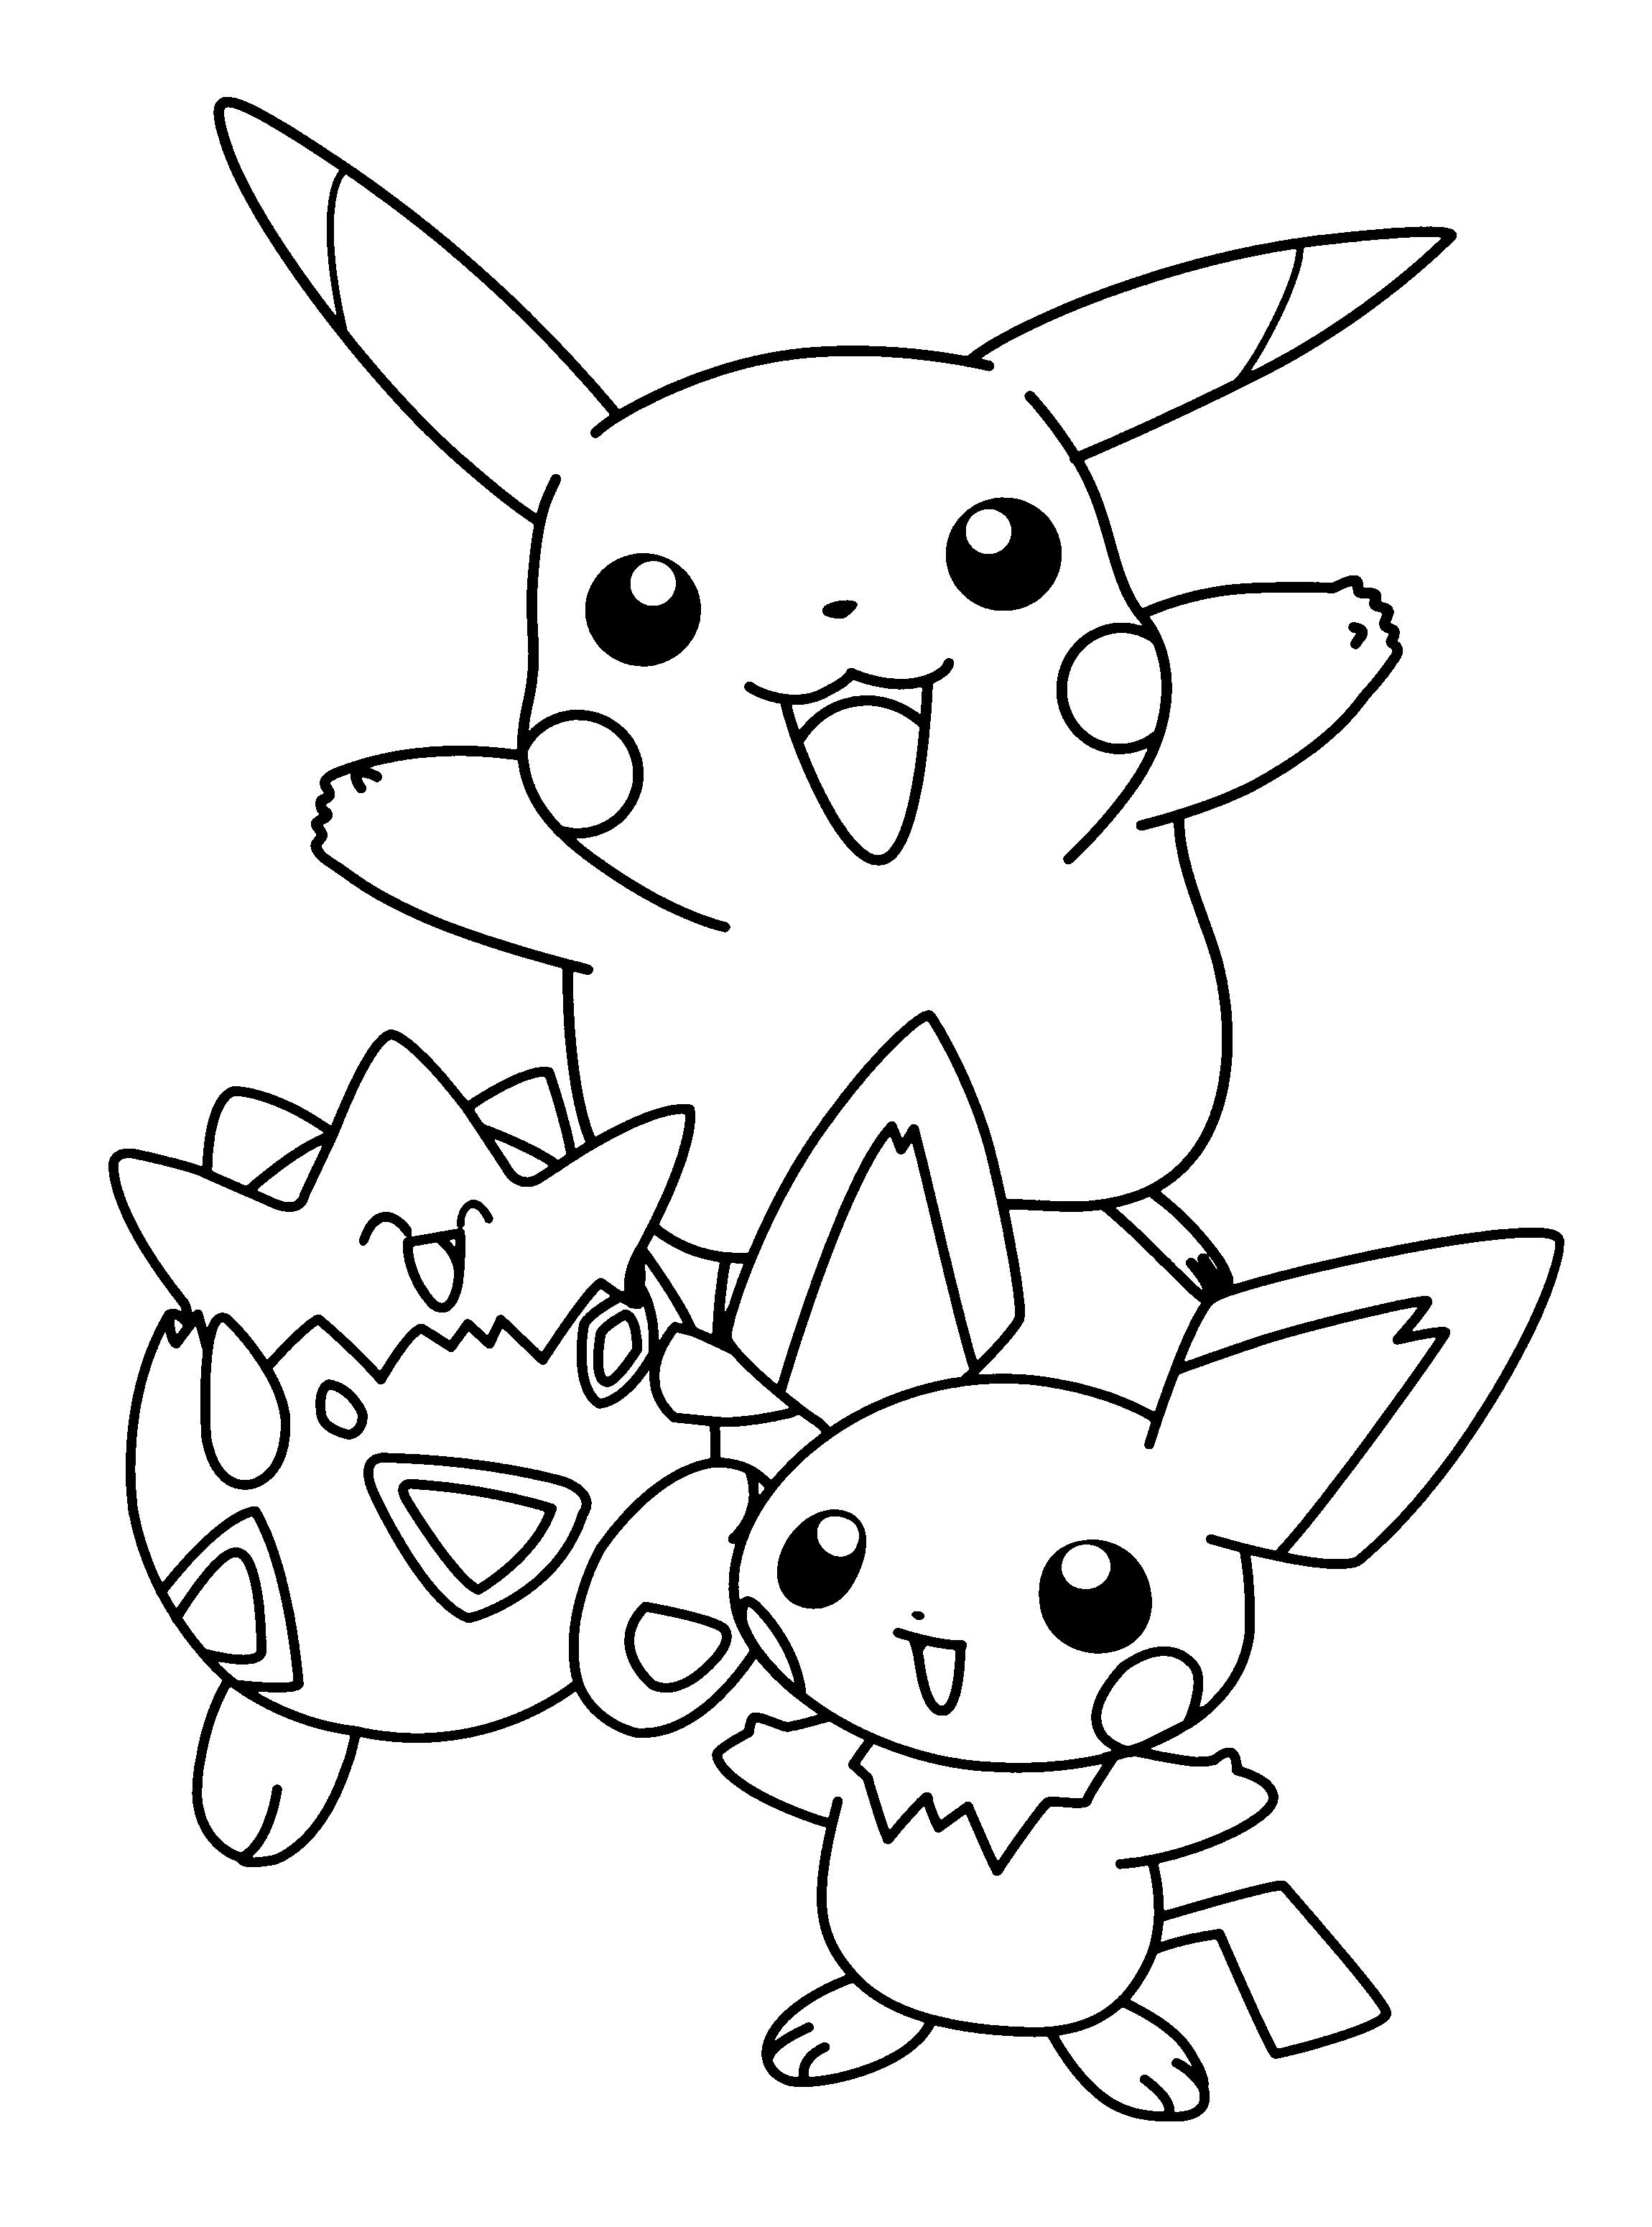 Pokemon Friends Coloring Pages From The Thousands Of Pictures On